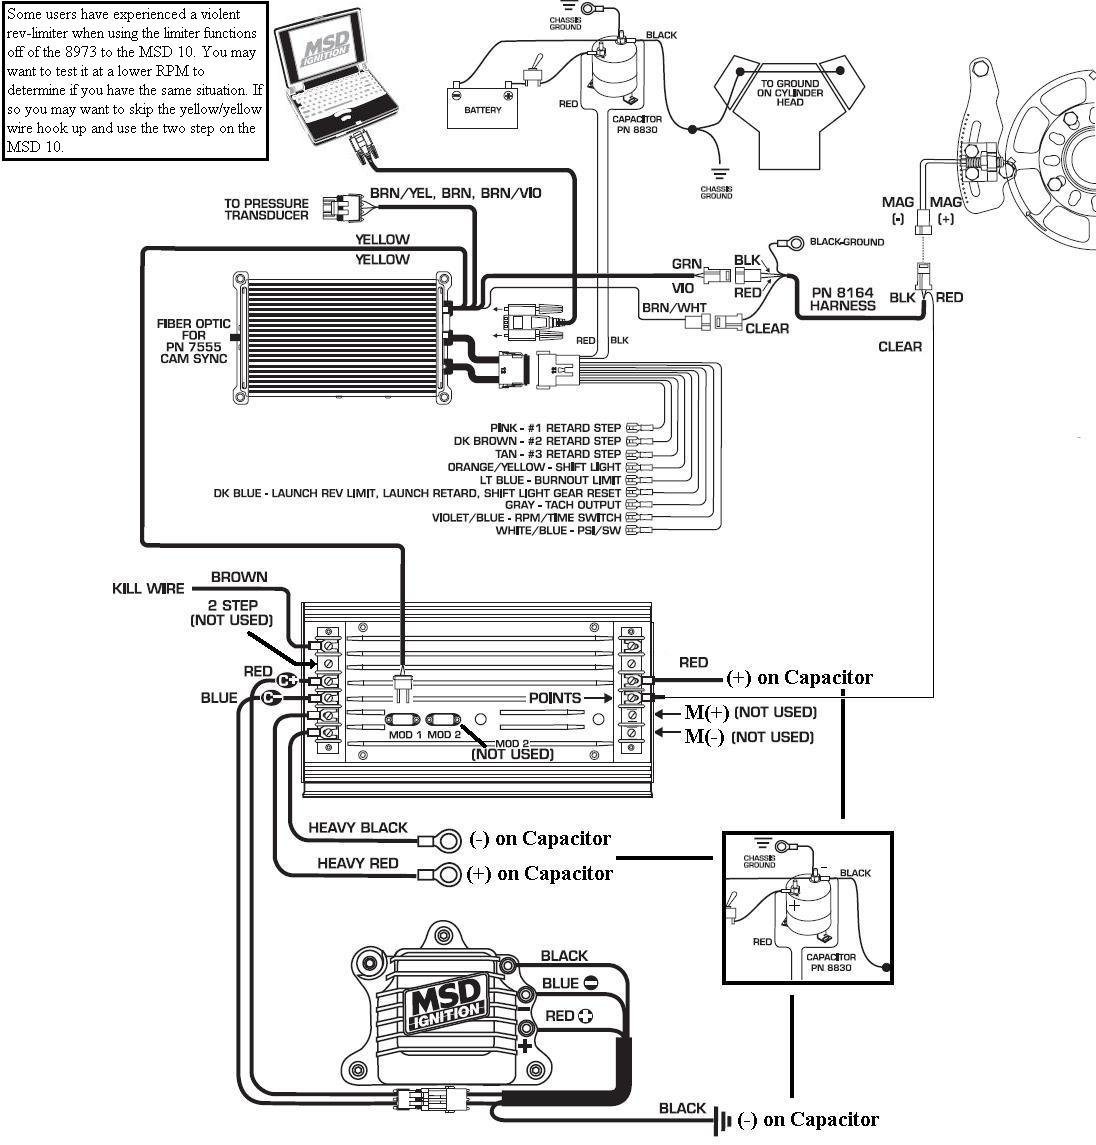 mallory sprint mag 2 wiring diagram